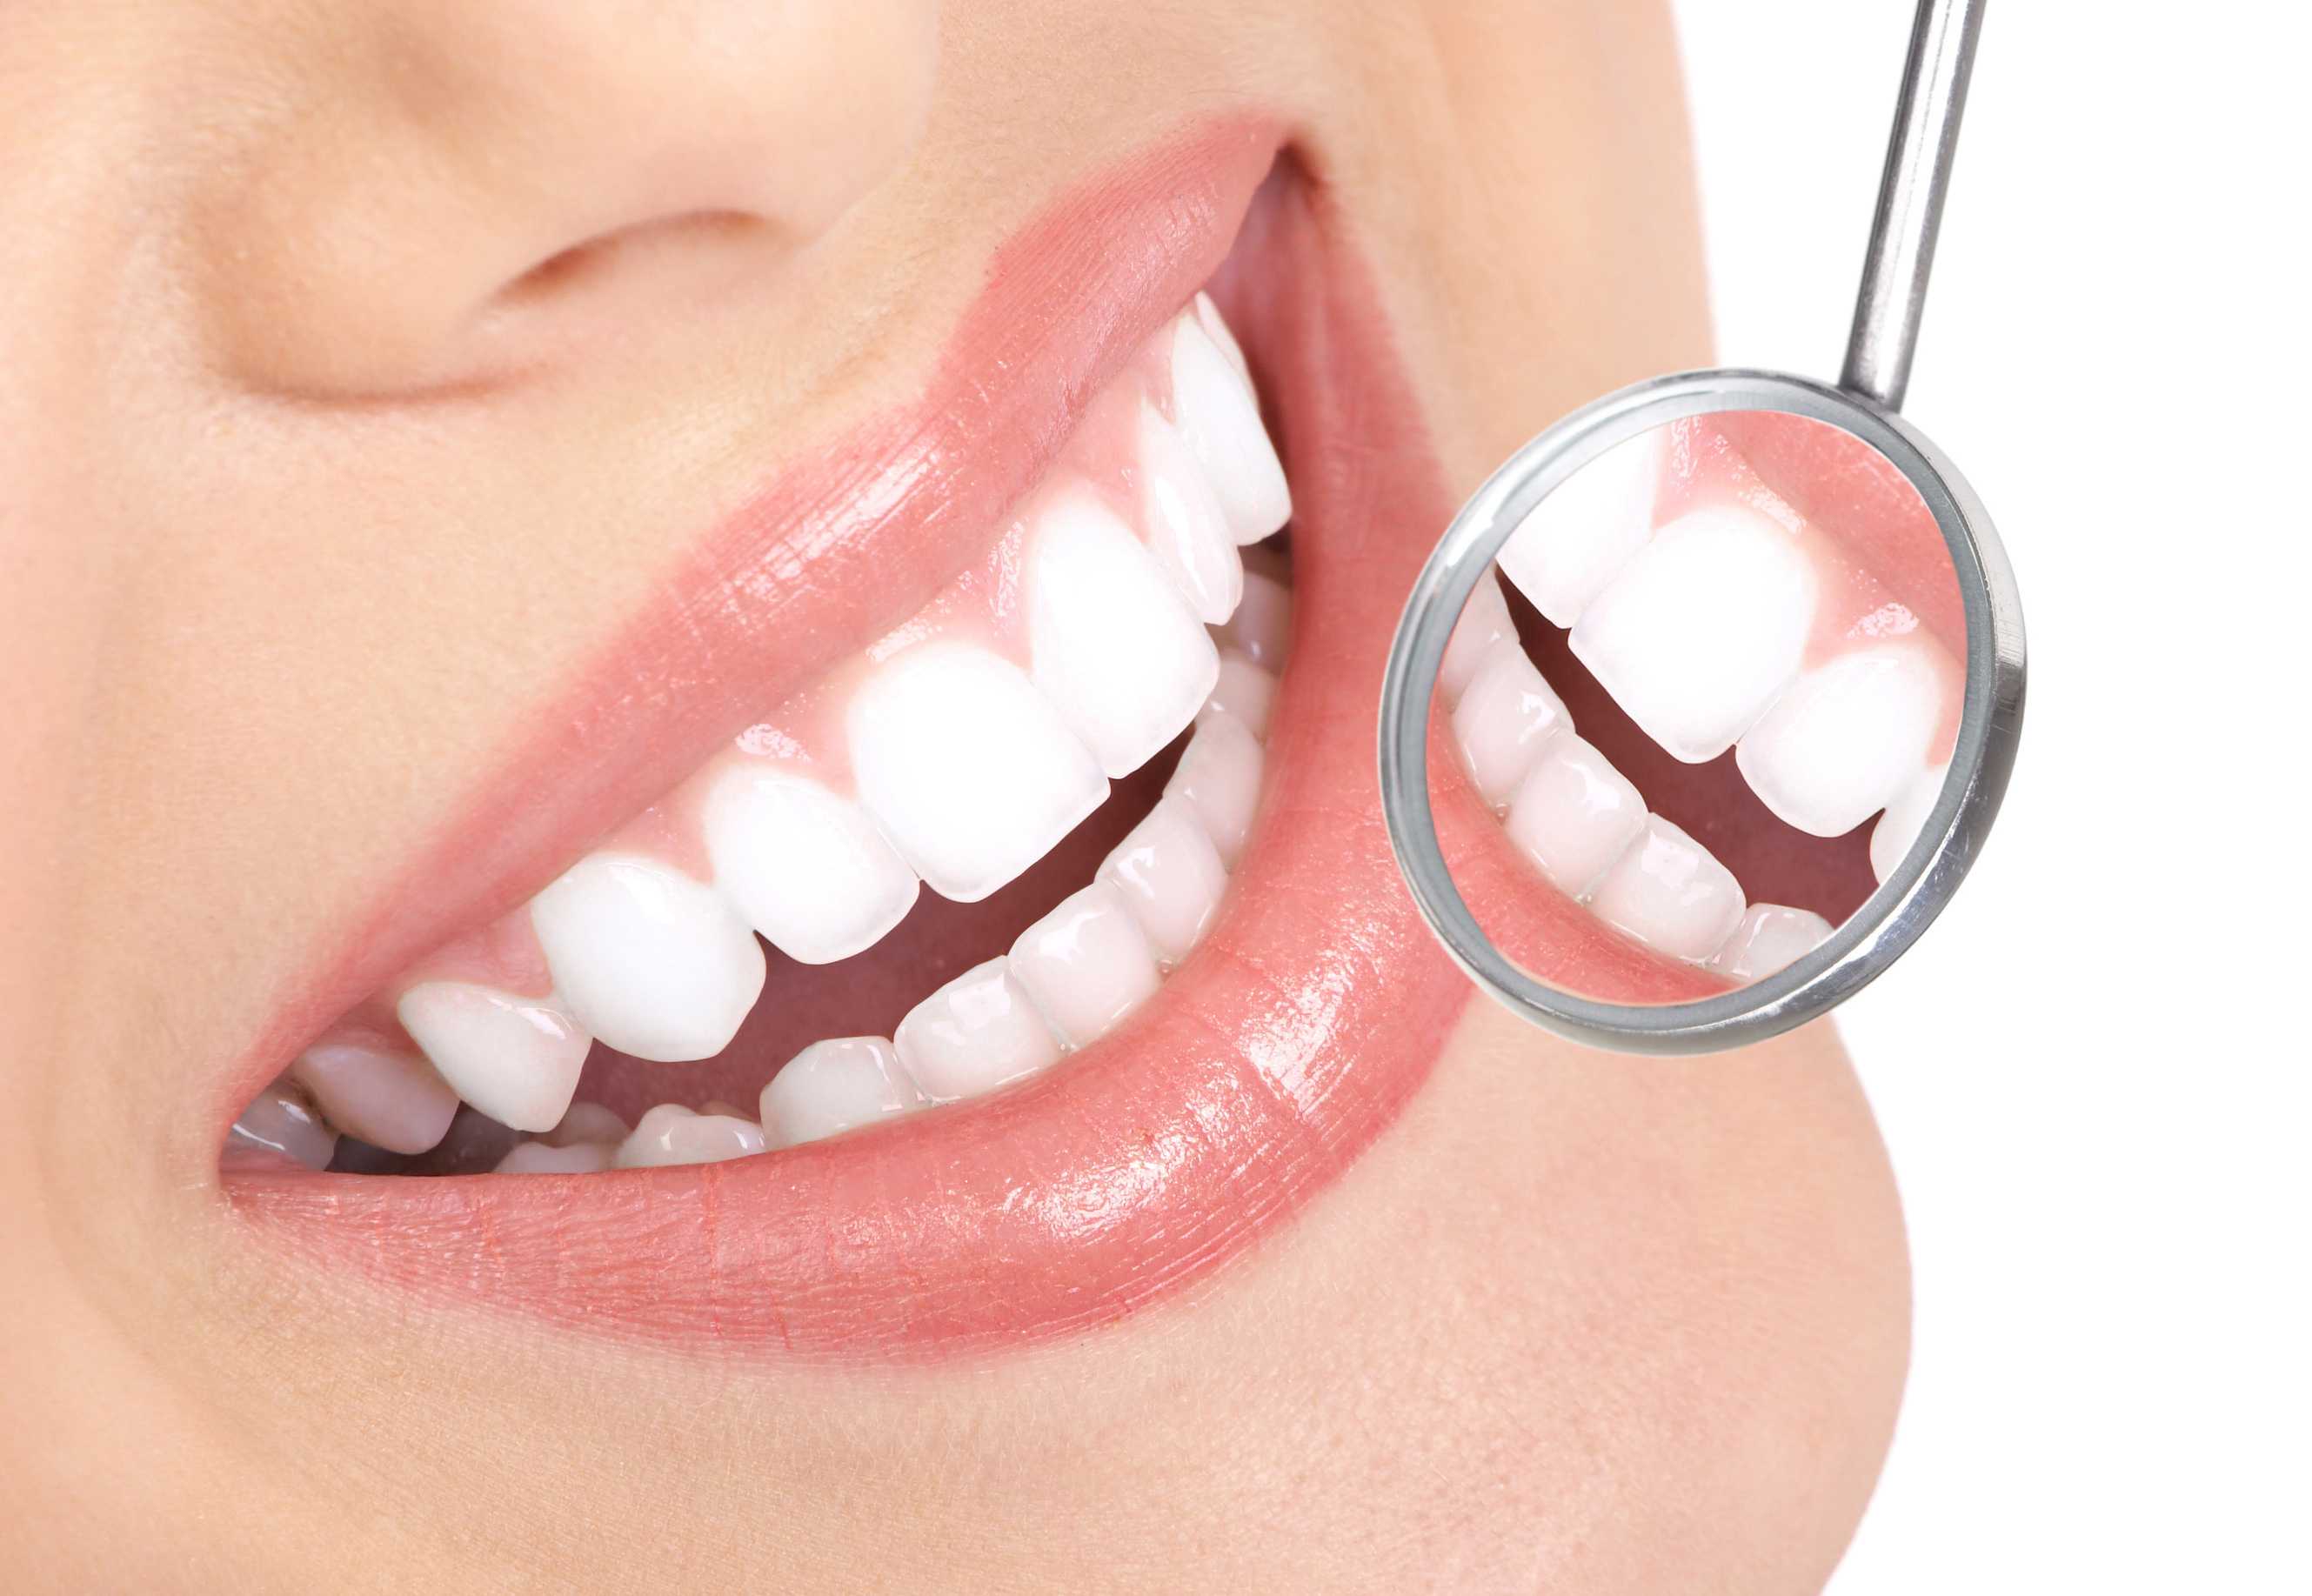 4 Top Reason Why People Have a Fear of Dentist And How to Find a Good Dentist